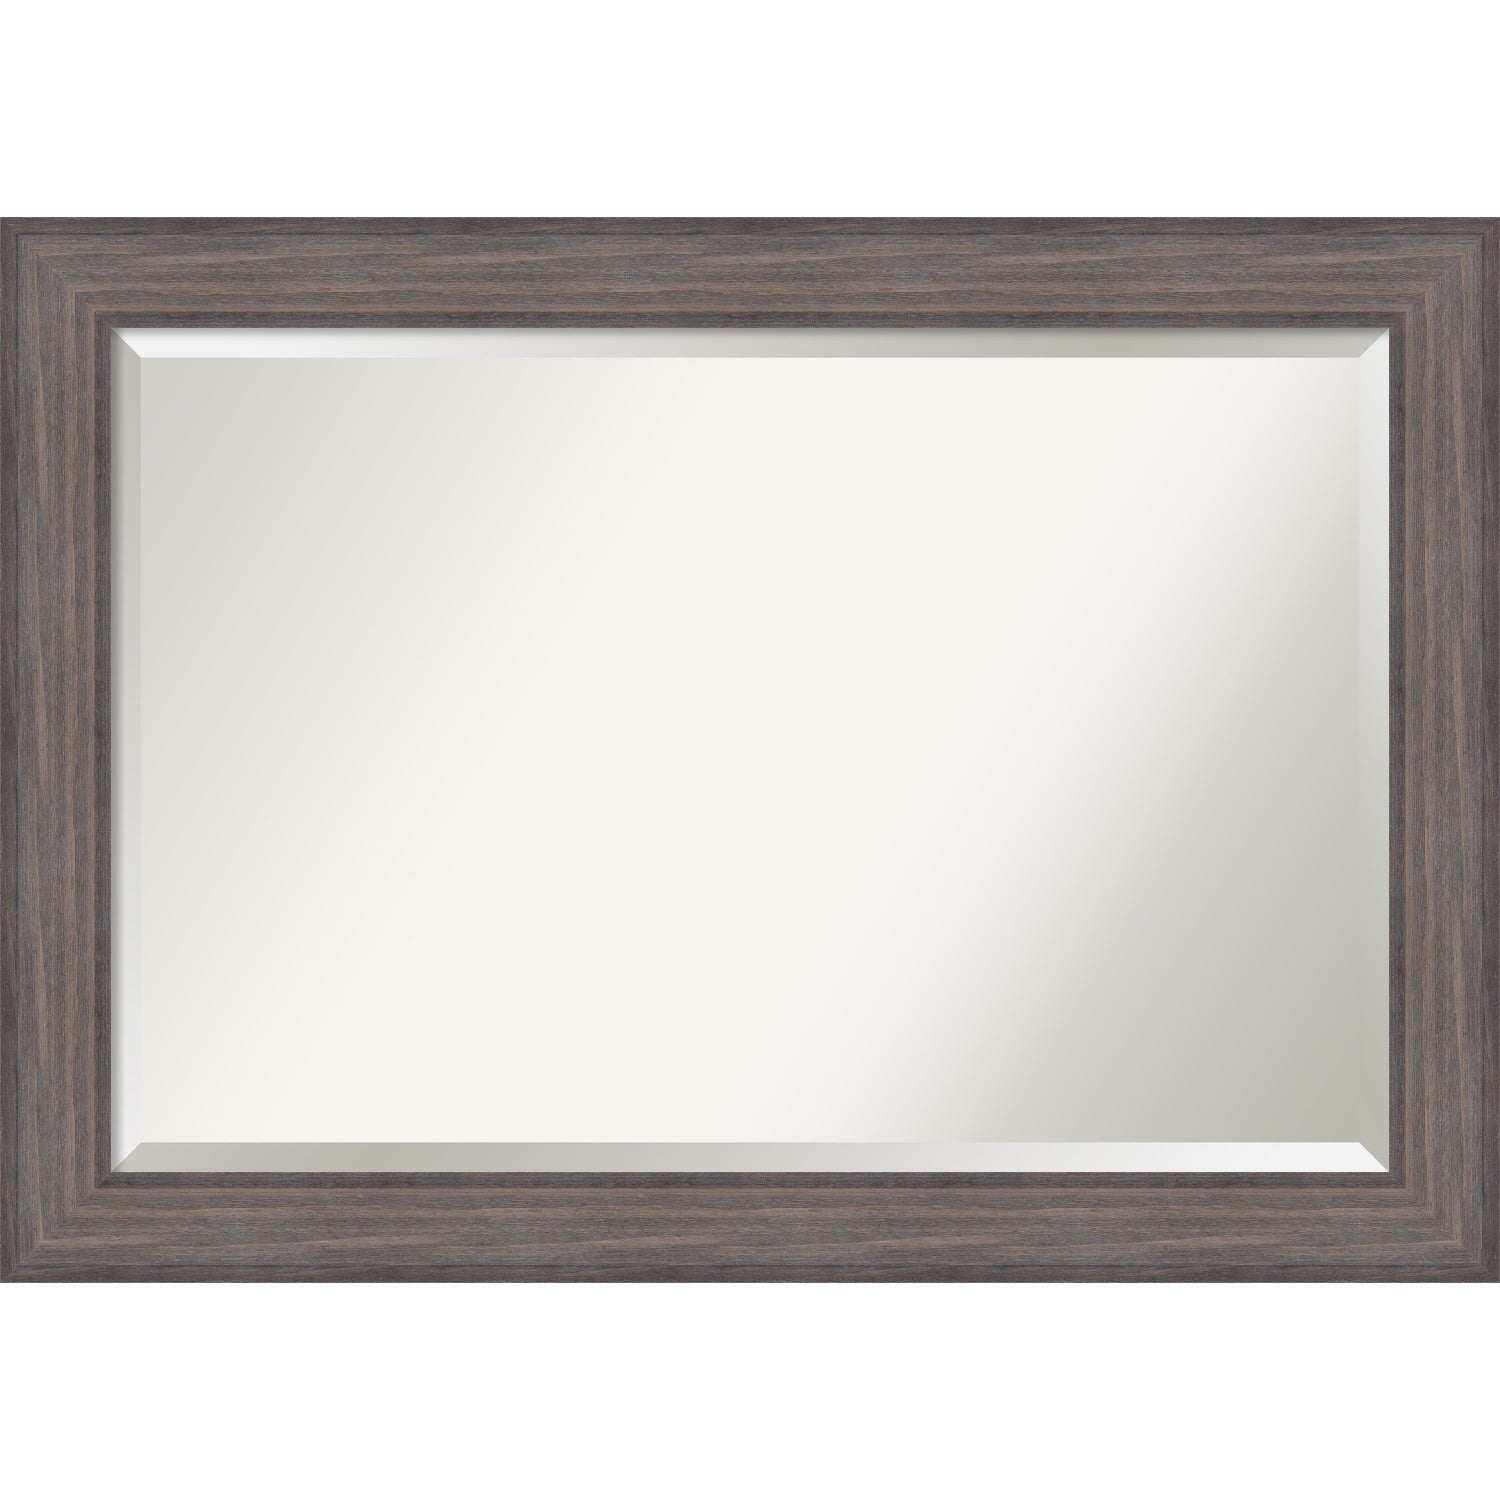 Bathroom Mirror Extra Large Country Barnwood 42 X 30 Inch Grey Free Shipping Today 15342208